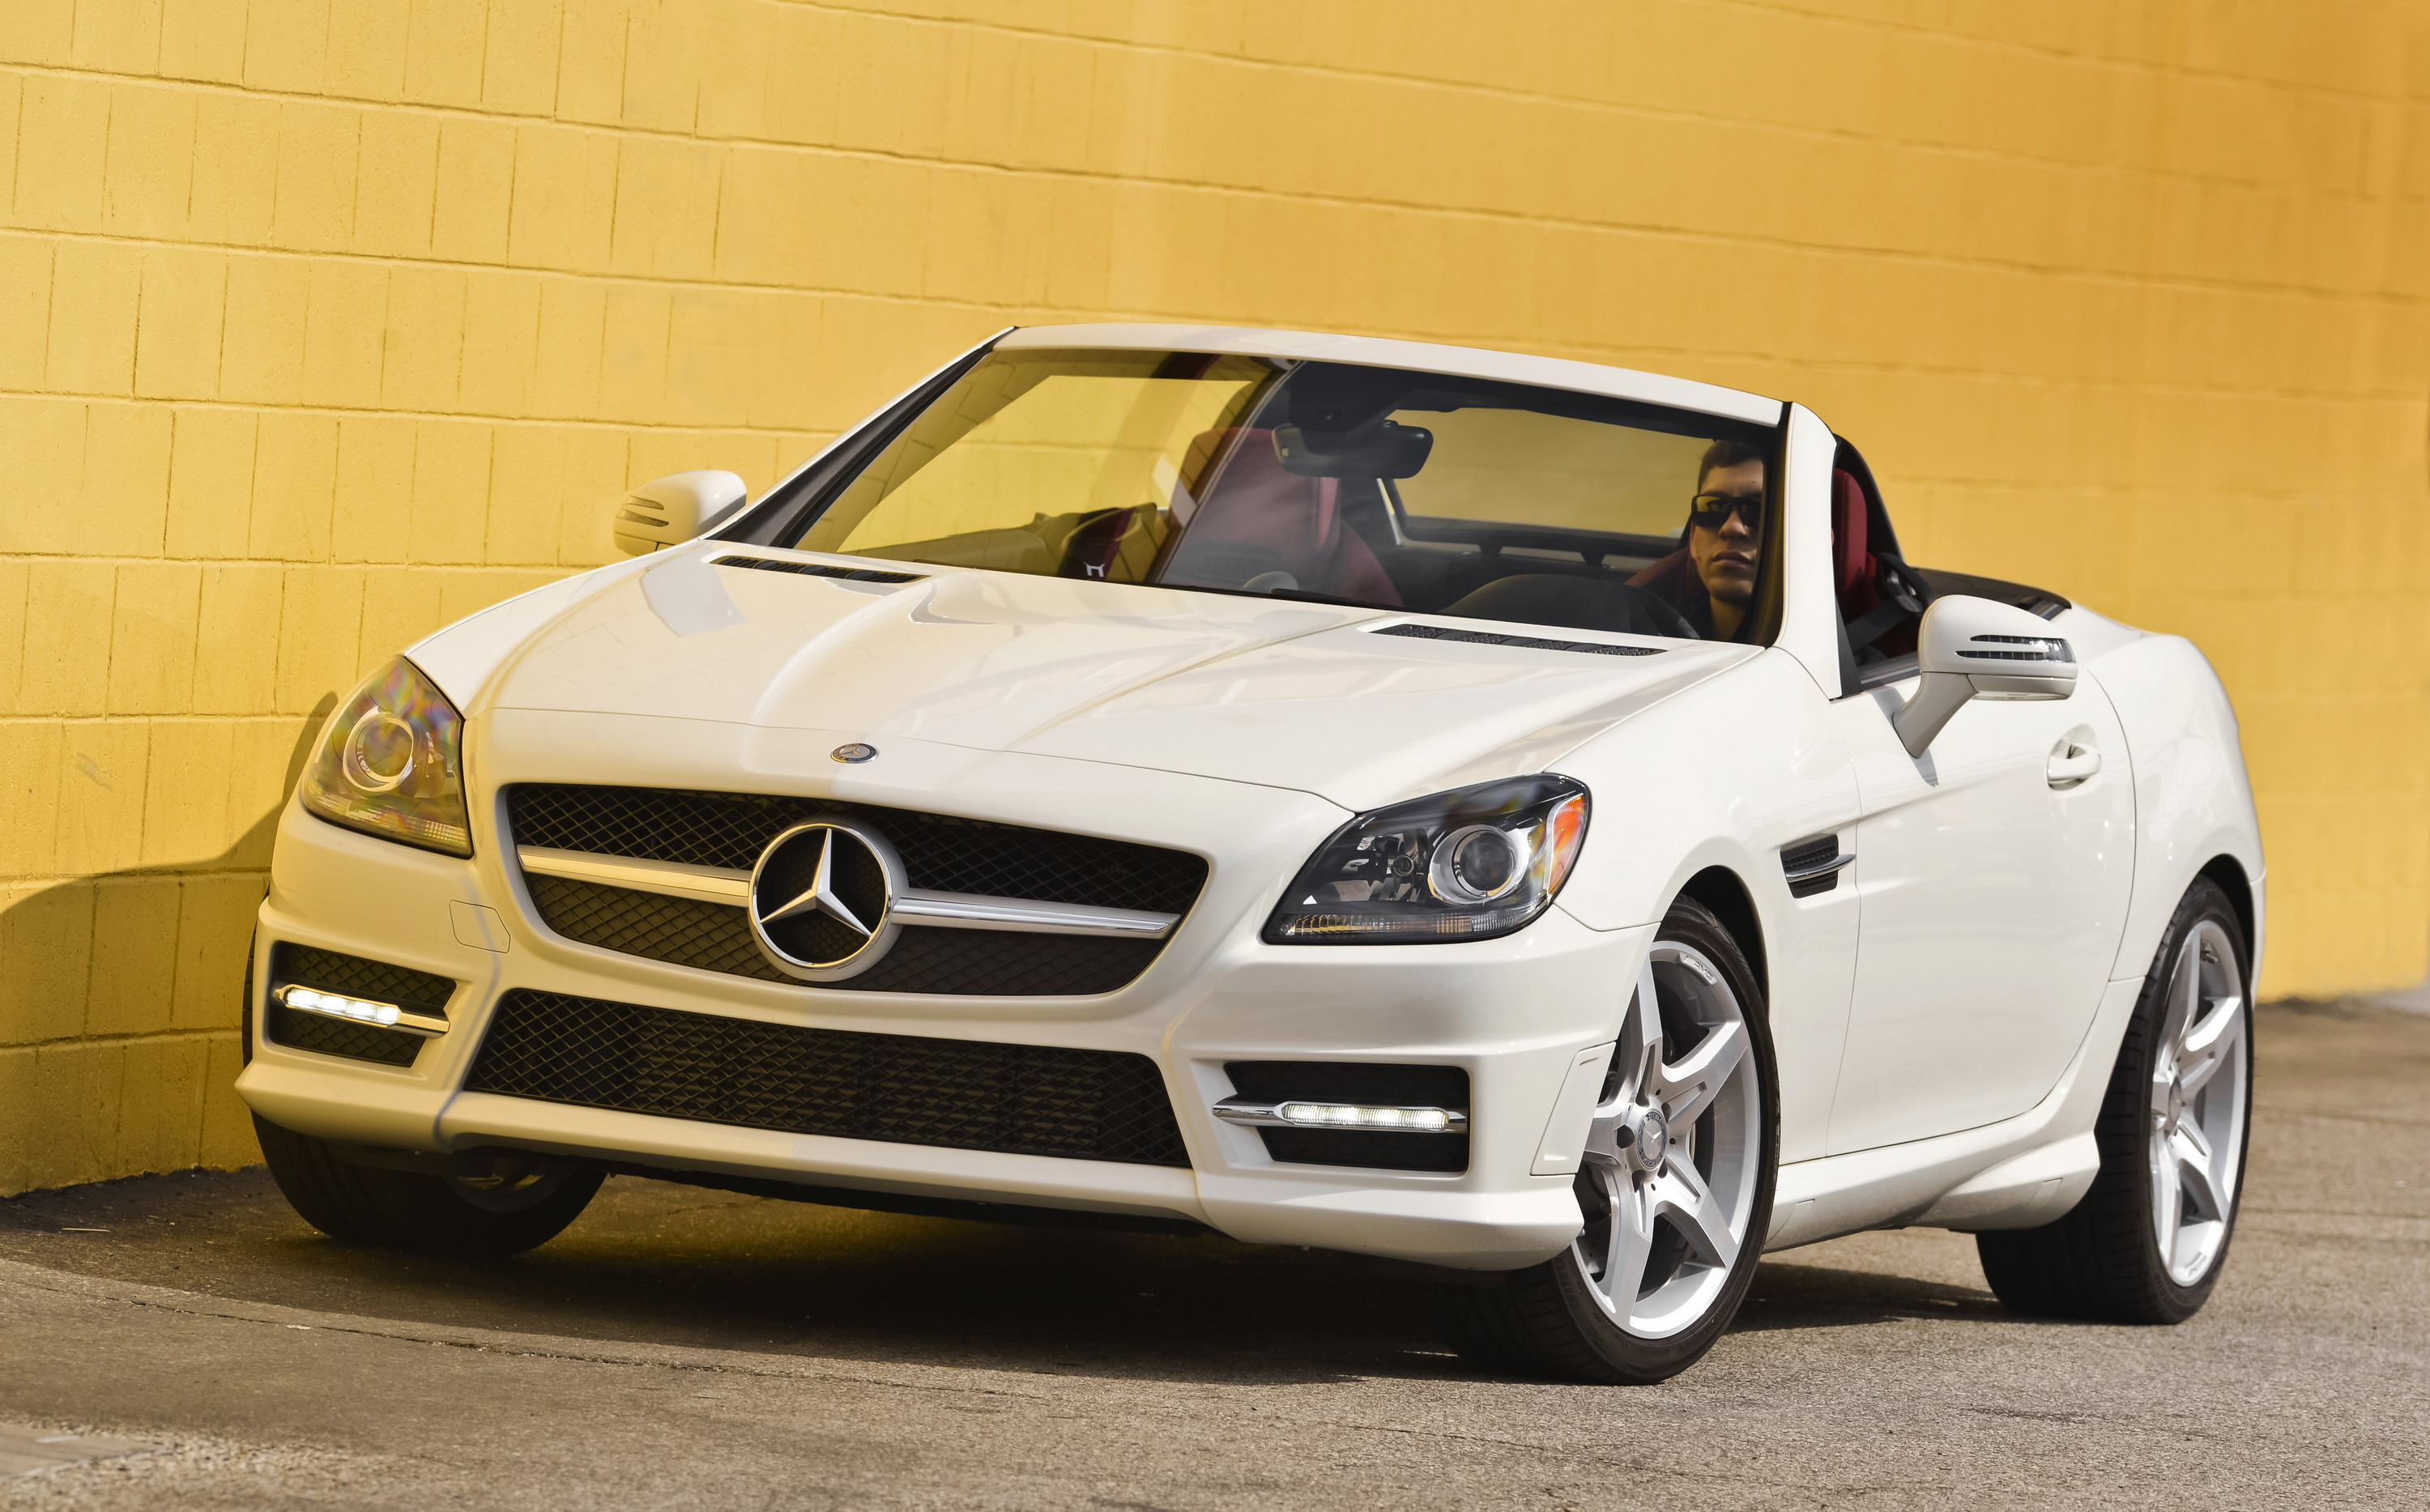 2018 mercedes benz slc class review gallery top speed for Mercedes benz slk 2018